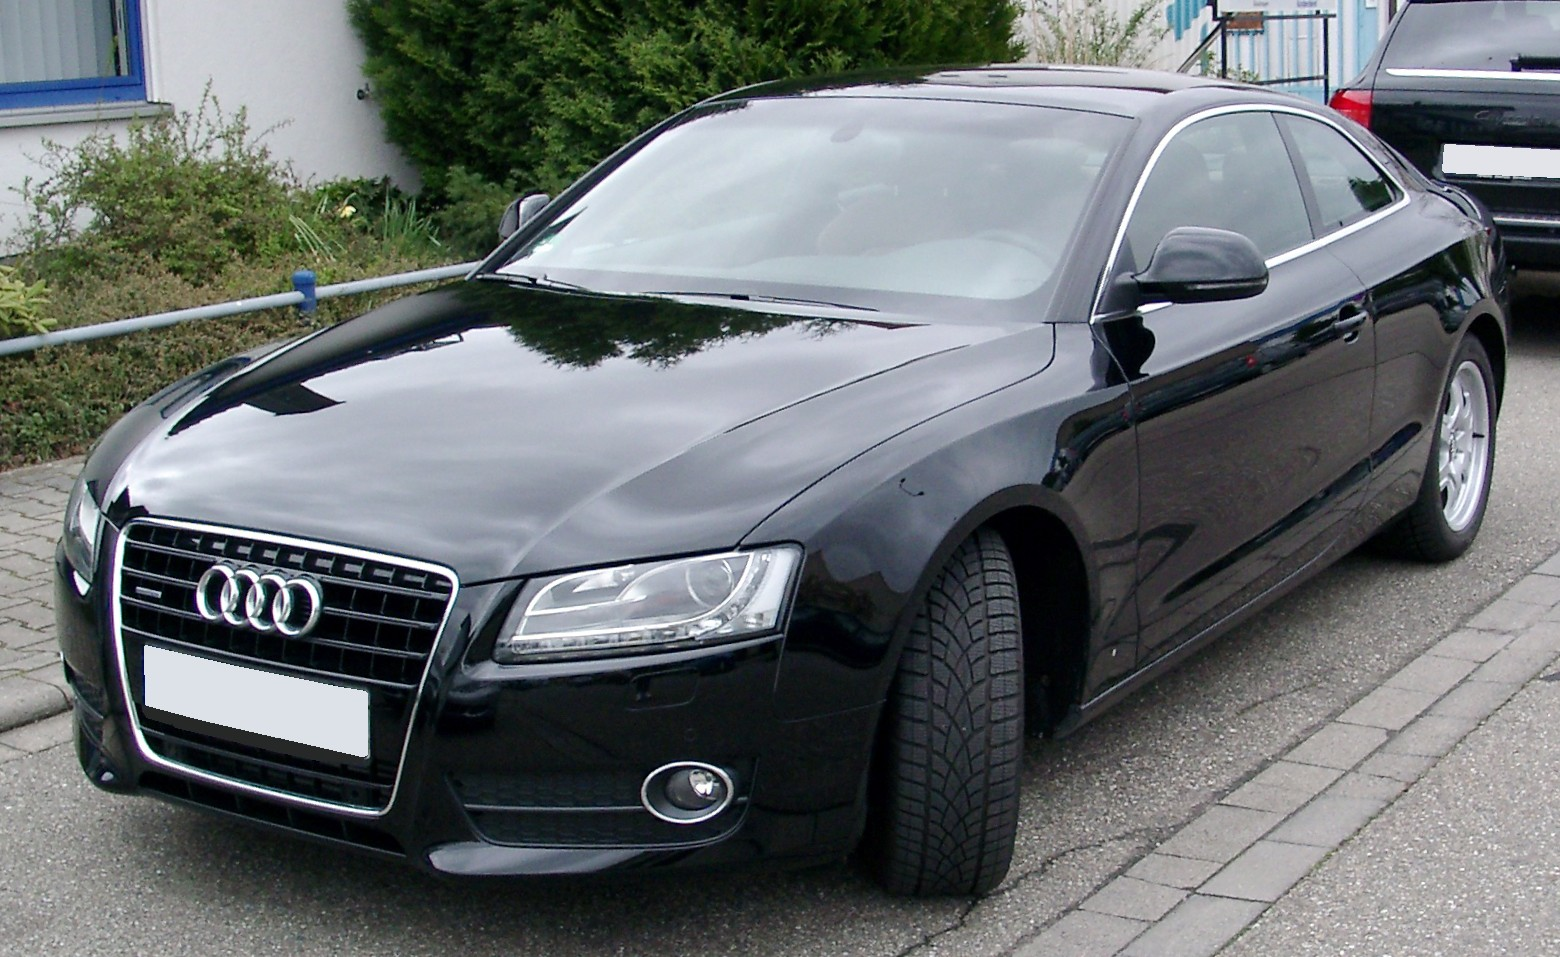 2008 audi a5 information and photos momentcar. Black Bedroom Furniture Sets. Home Design Ideas